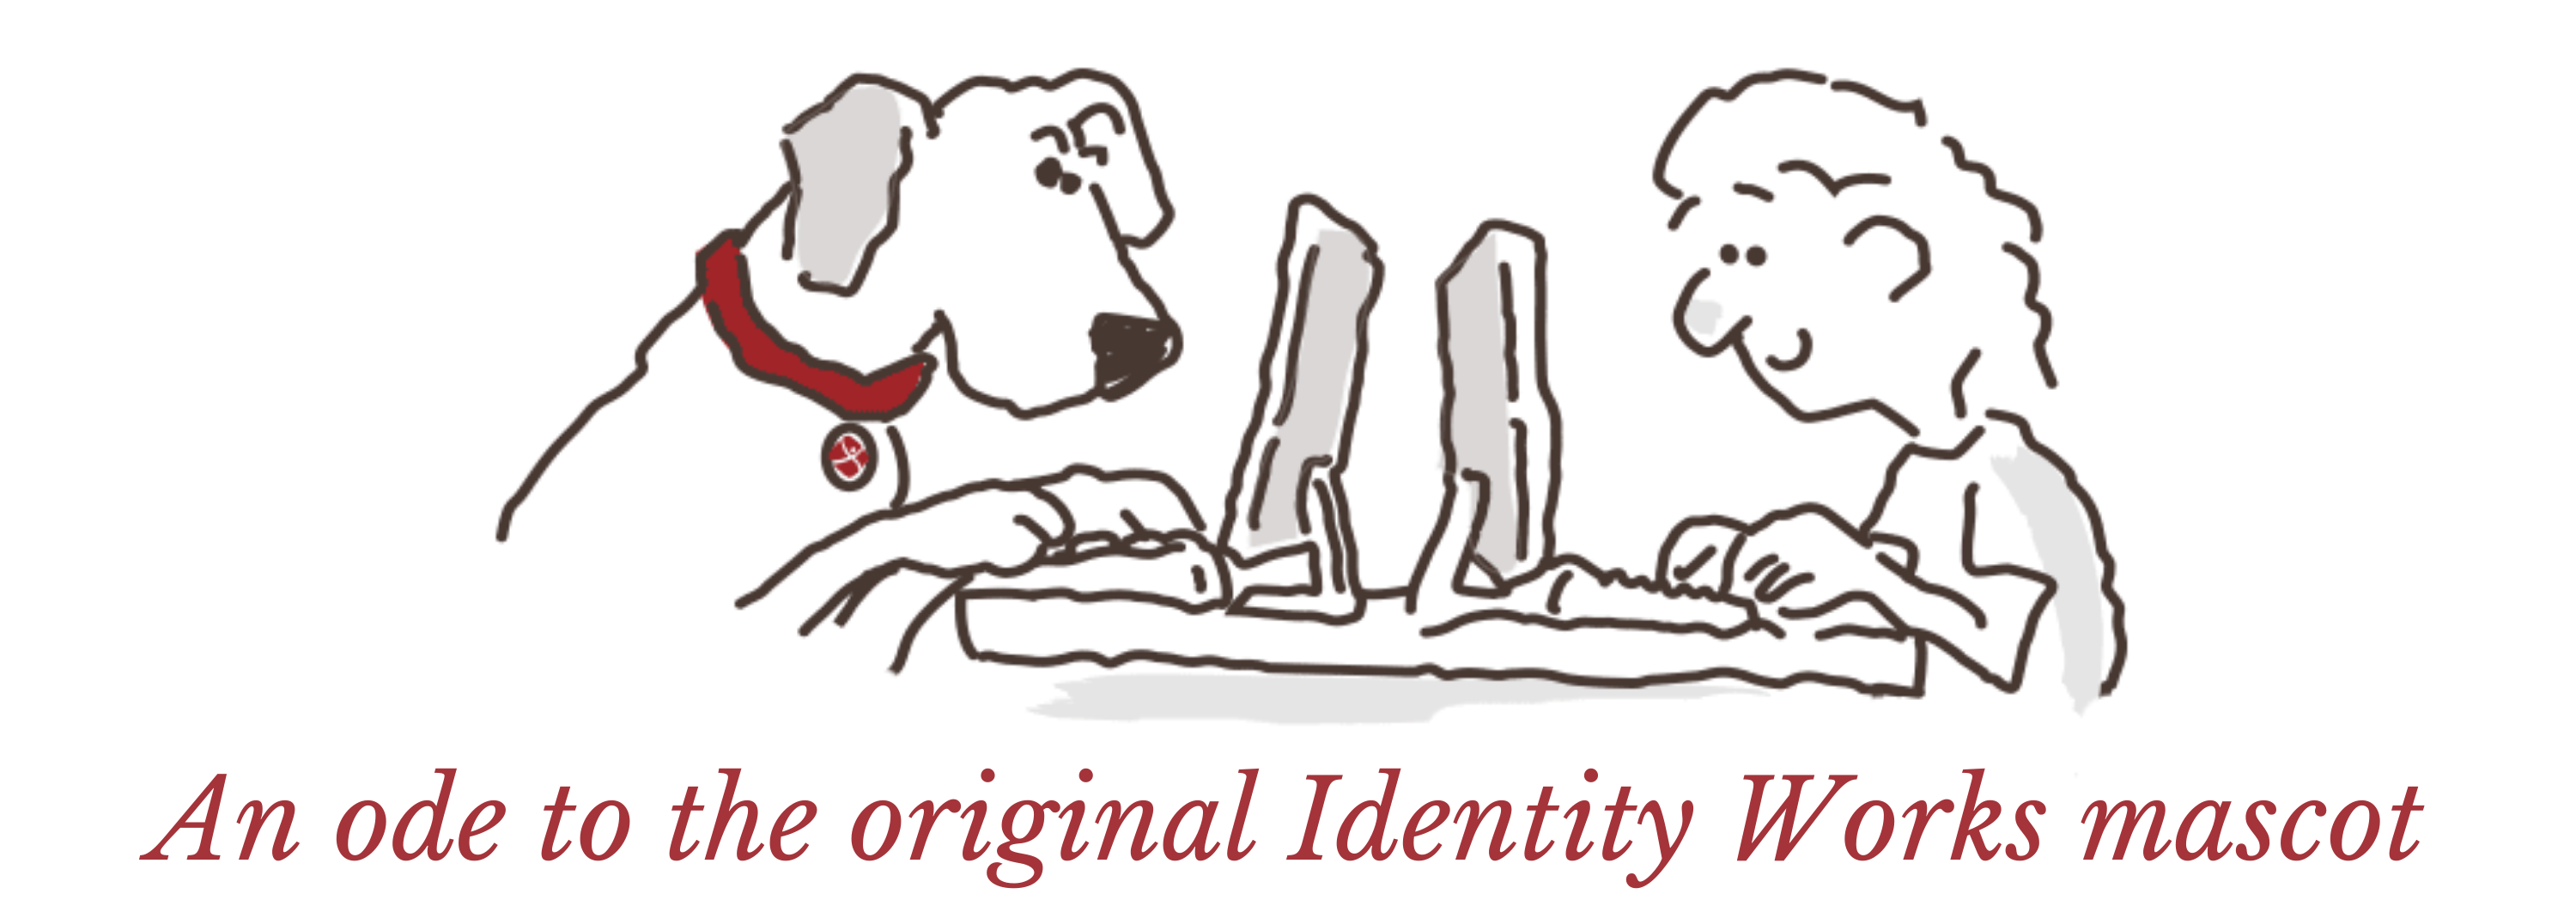 Ted and Bridget working | An ode to the original identity Works mascot